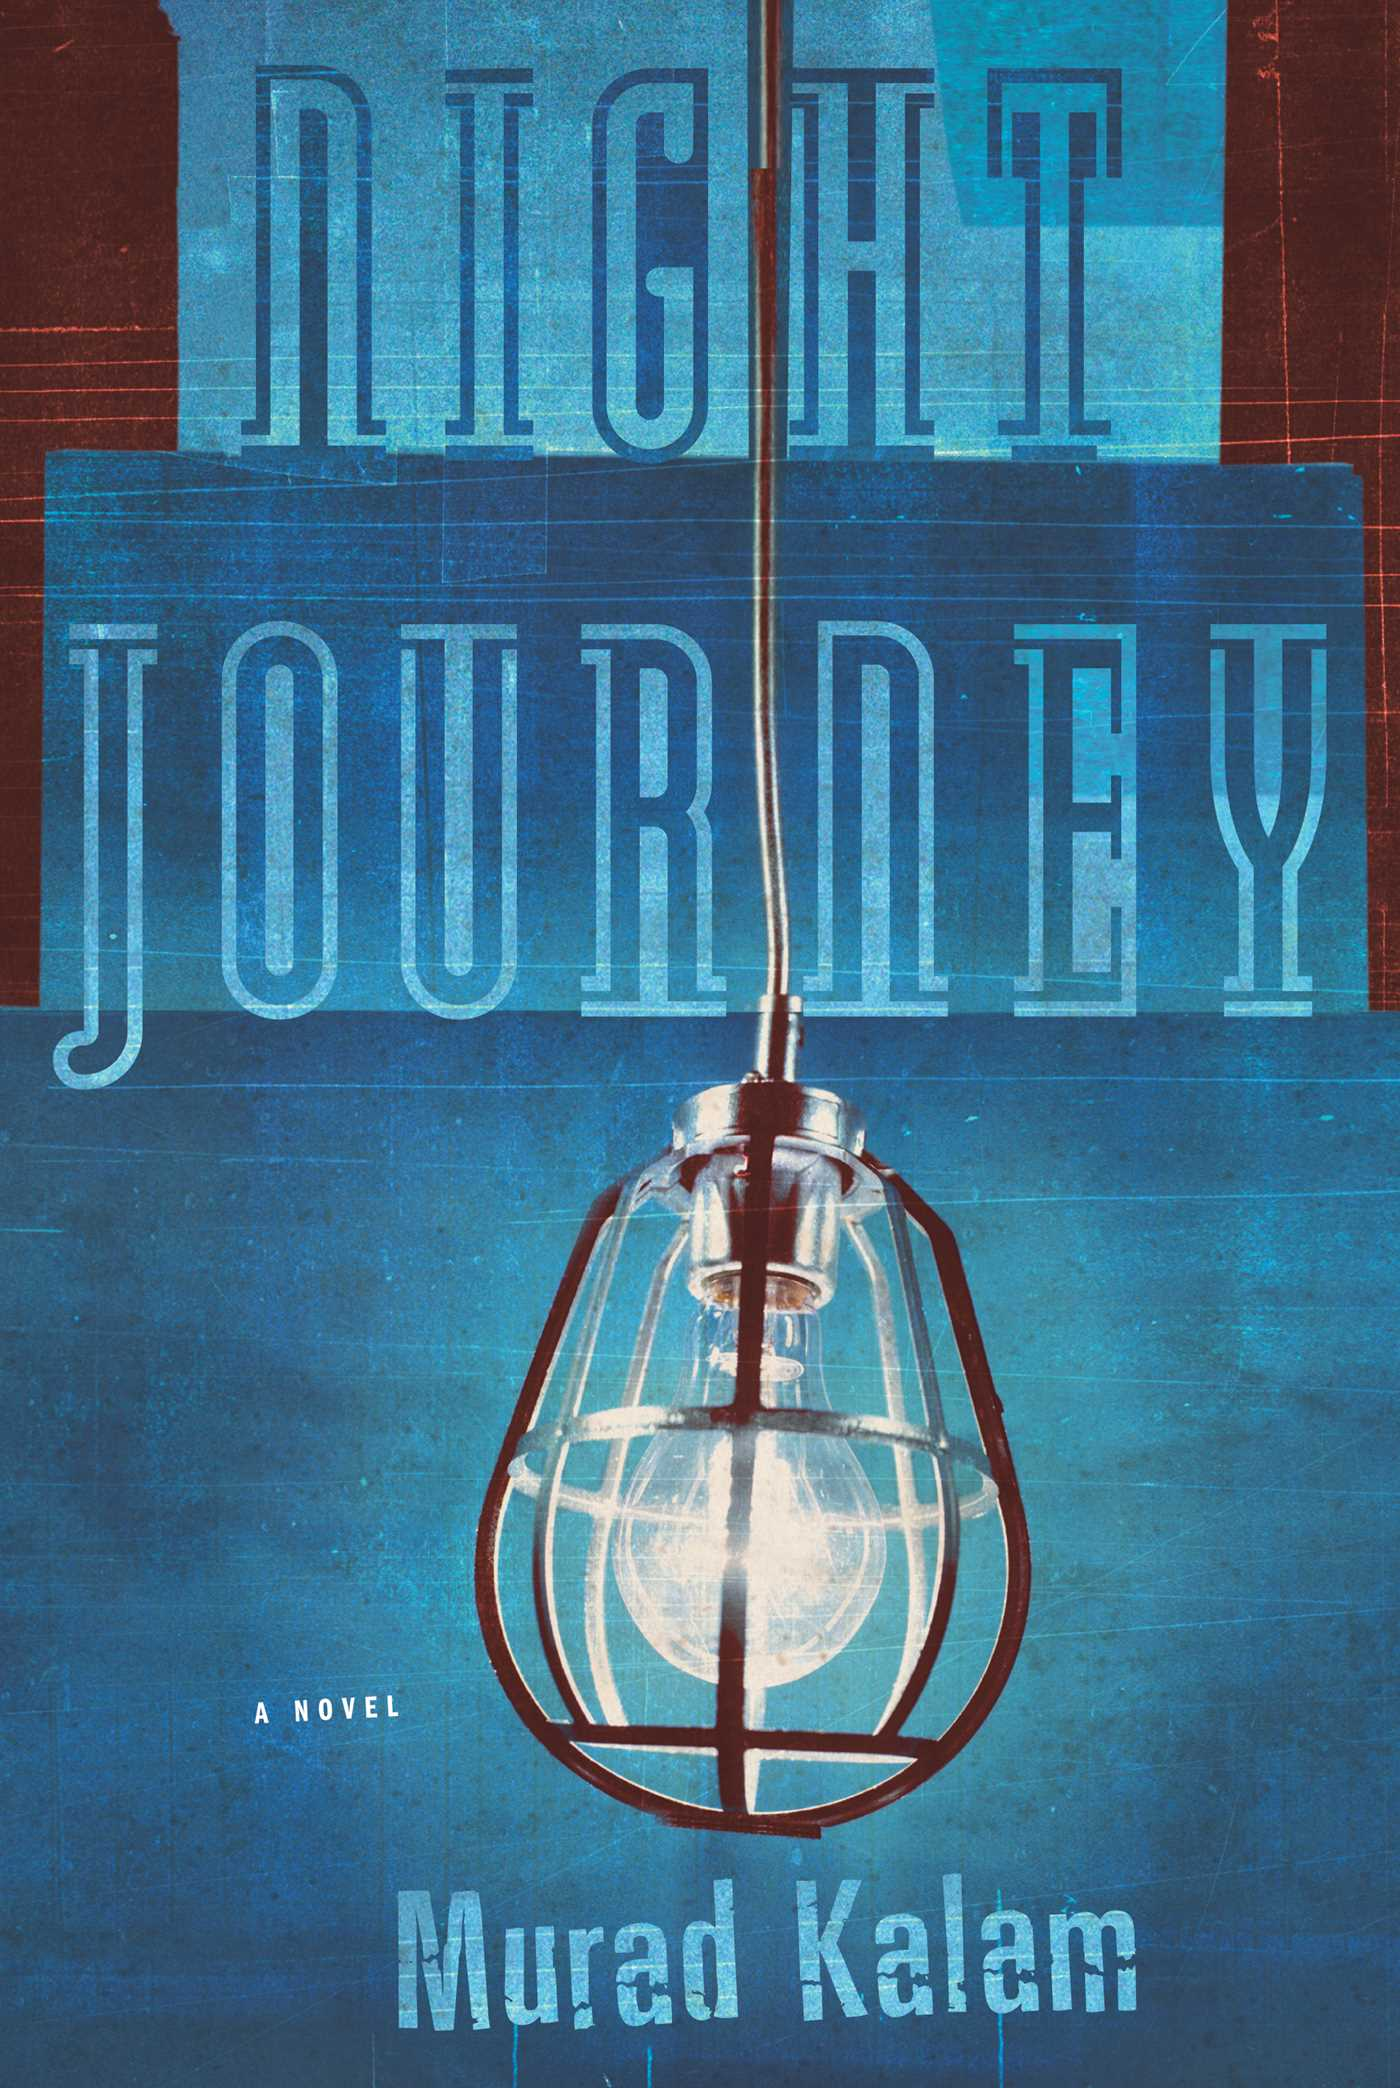 night journeys book review Among the summaries and analysis available for journey to the end of the night, there are 1 full study guide, 1 short summary and 2 book reviews.